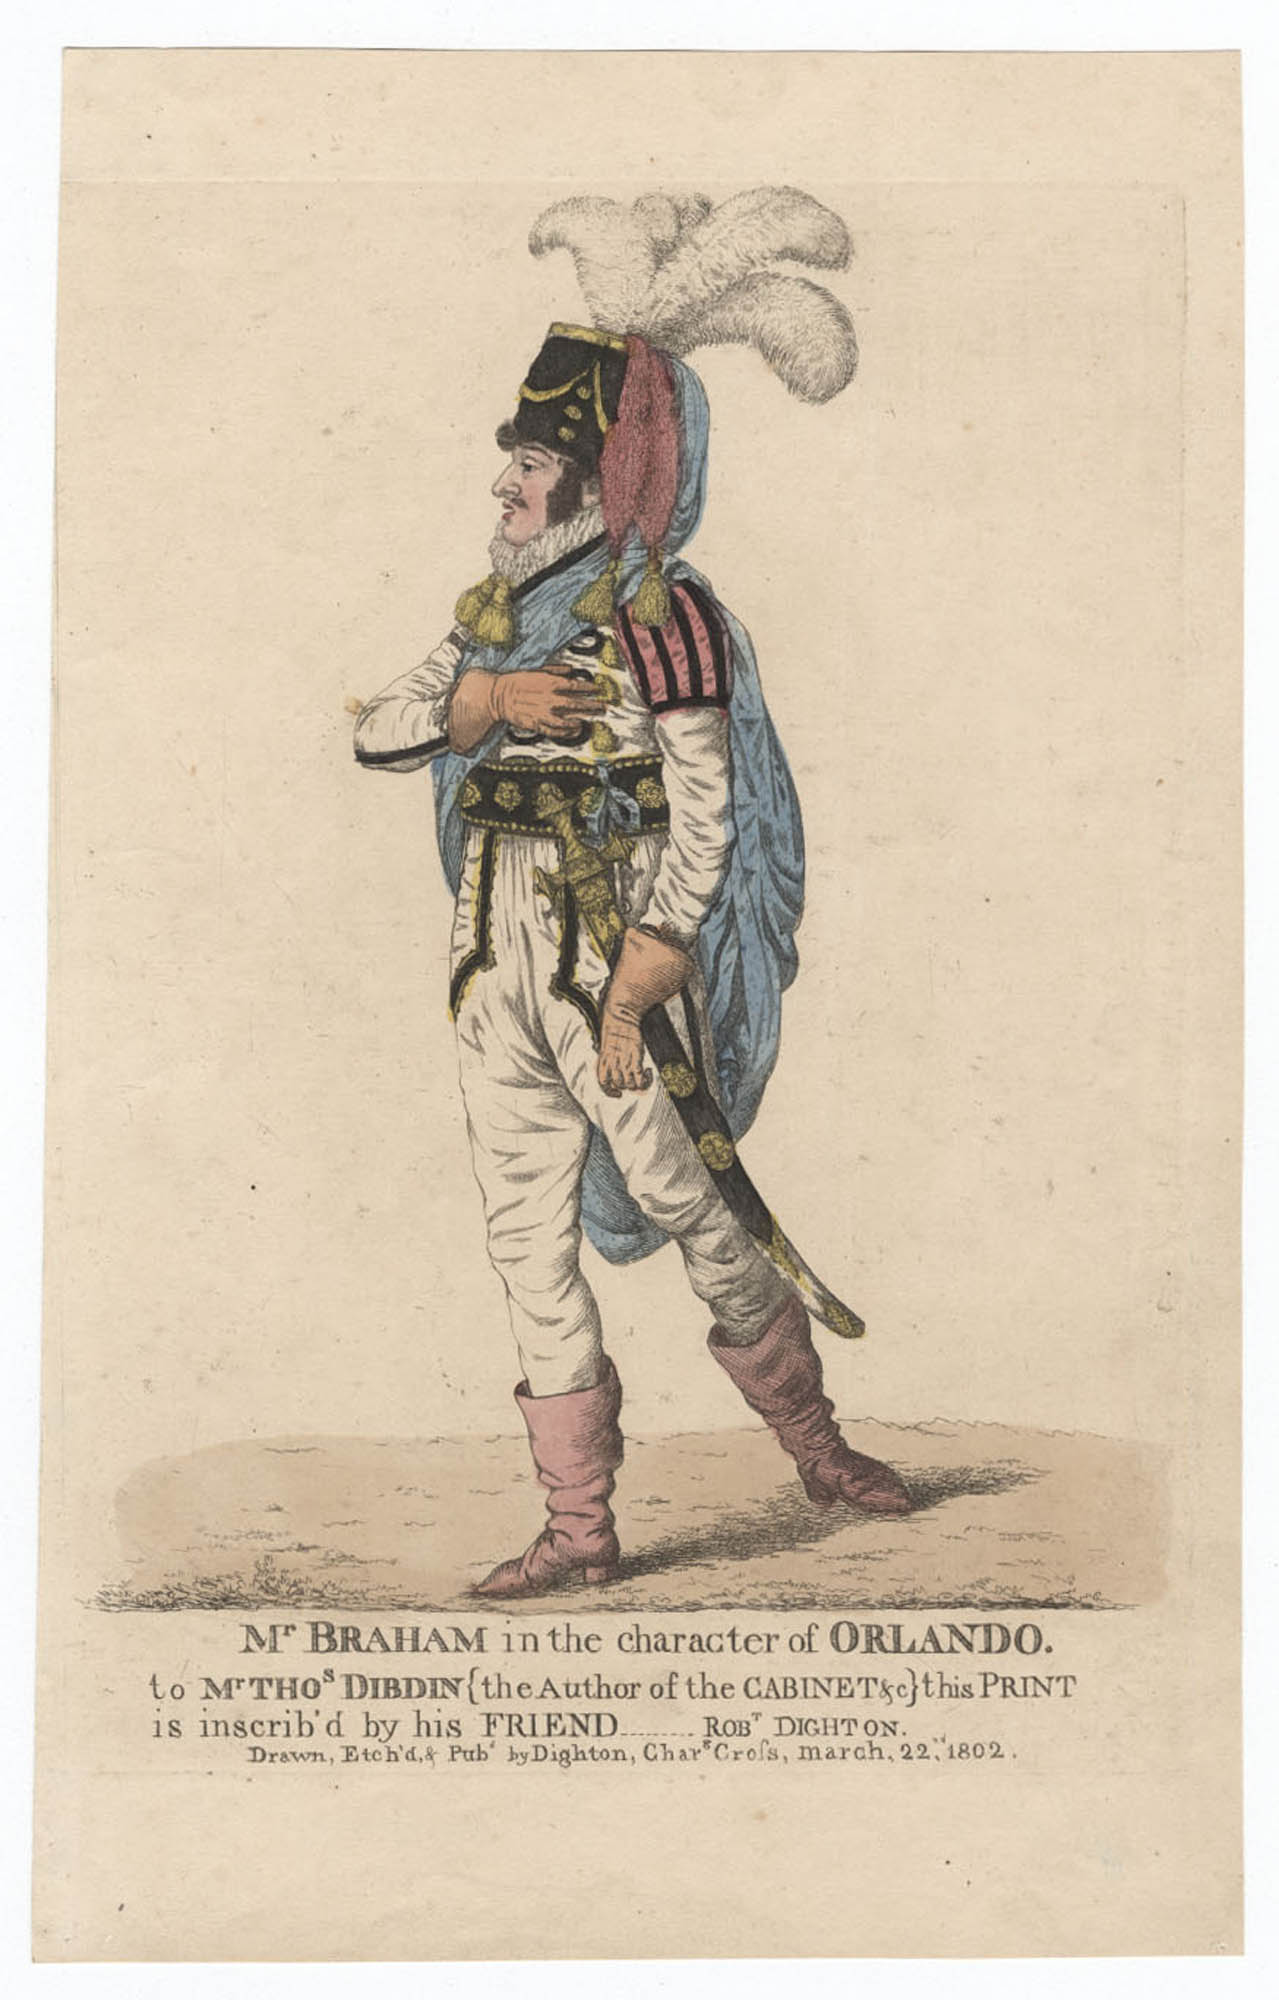 Mr. Braham in the character of Orlando